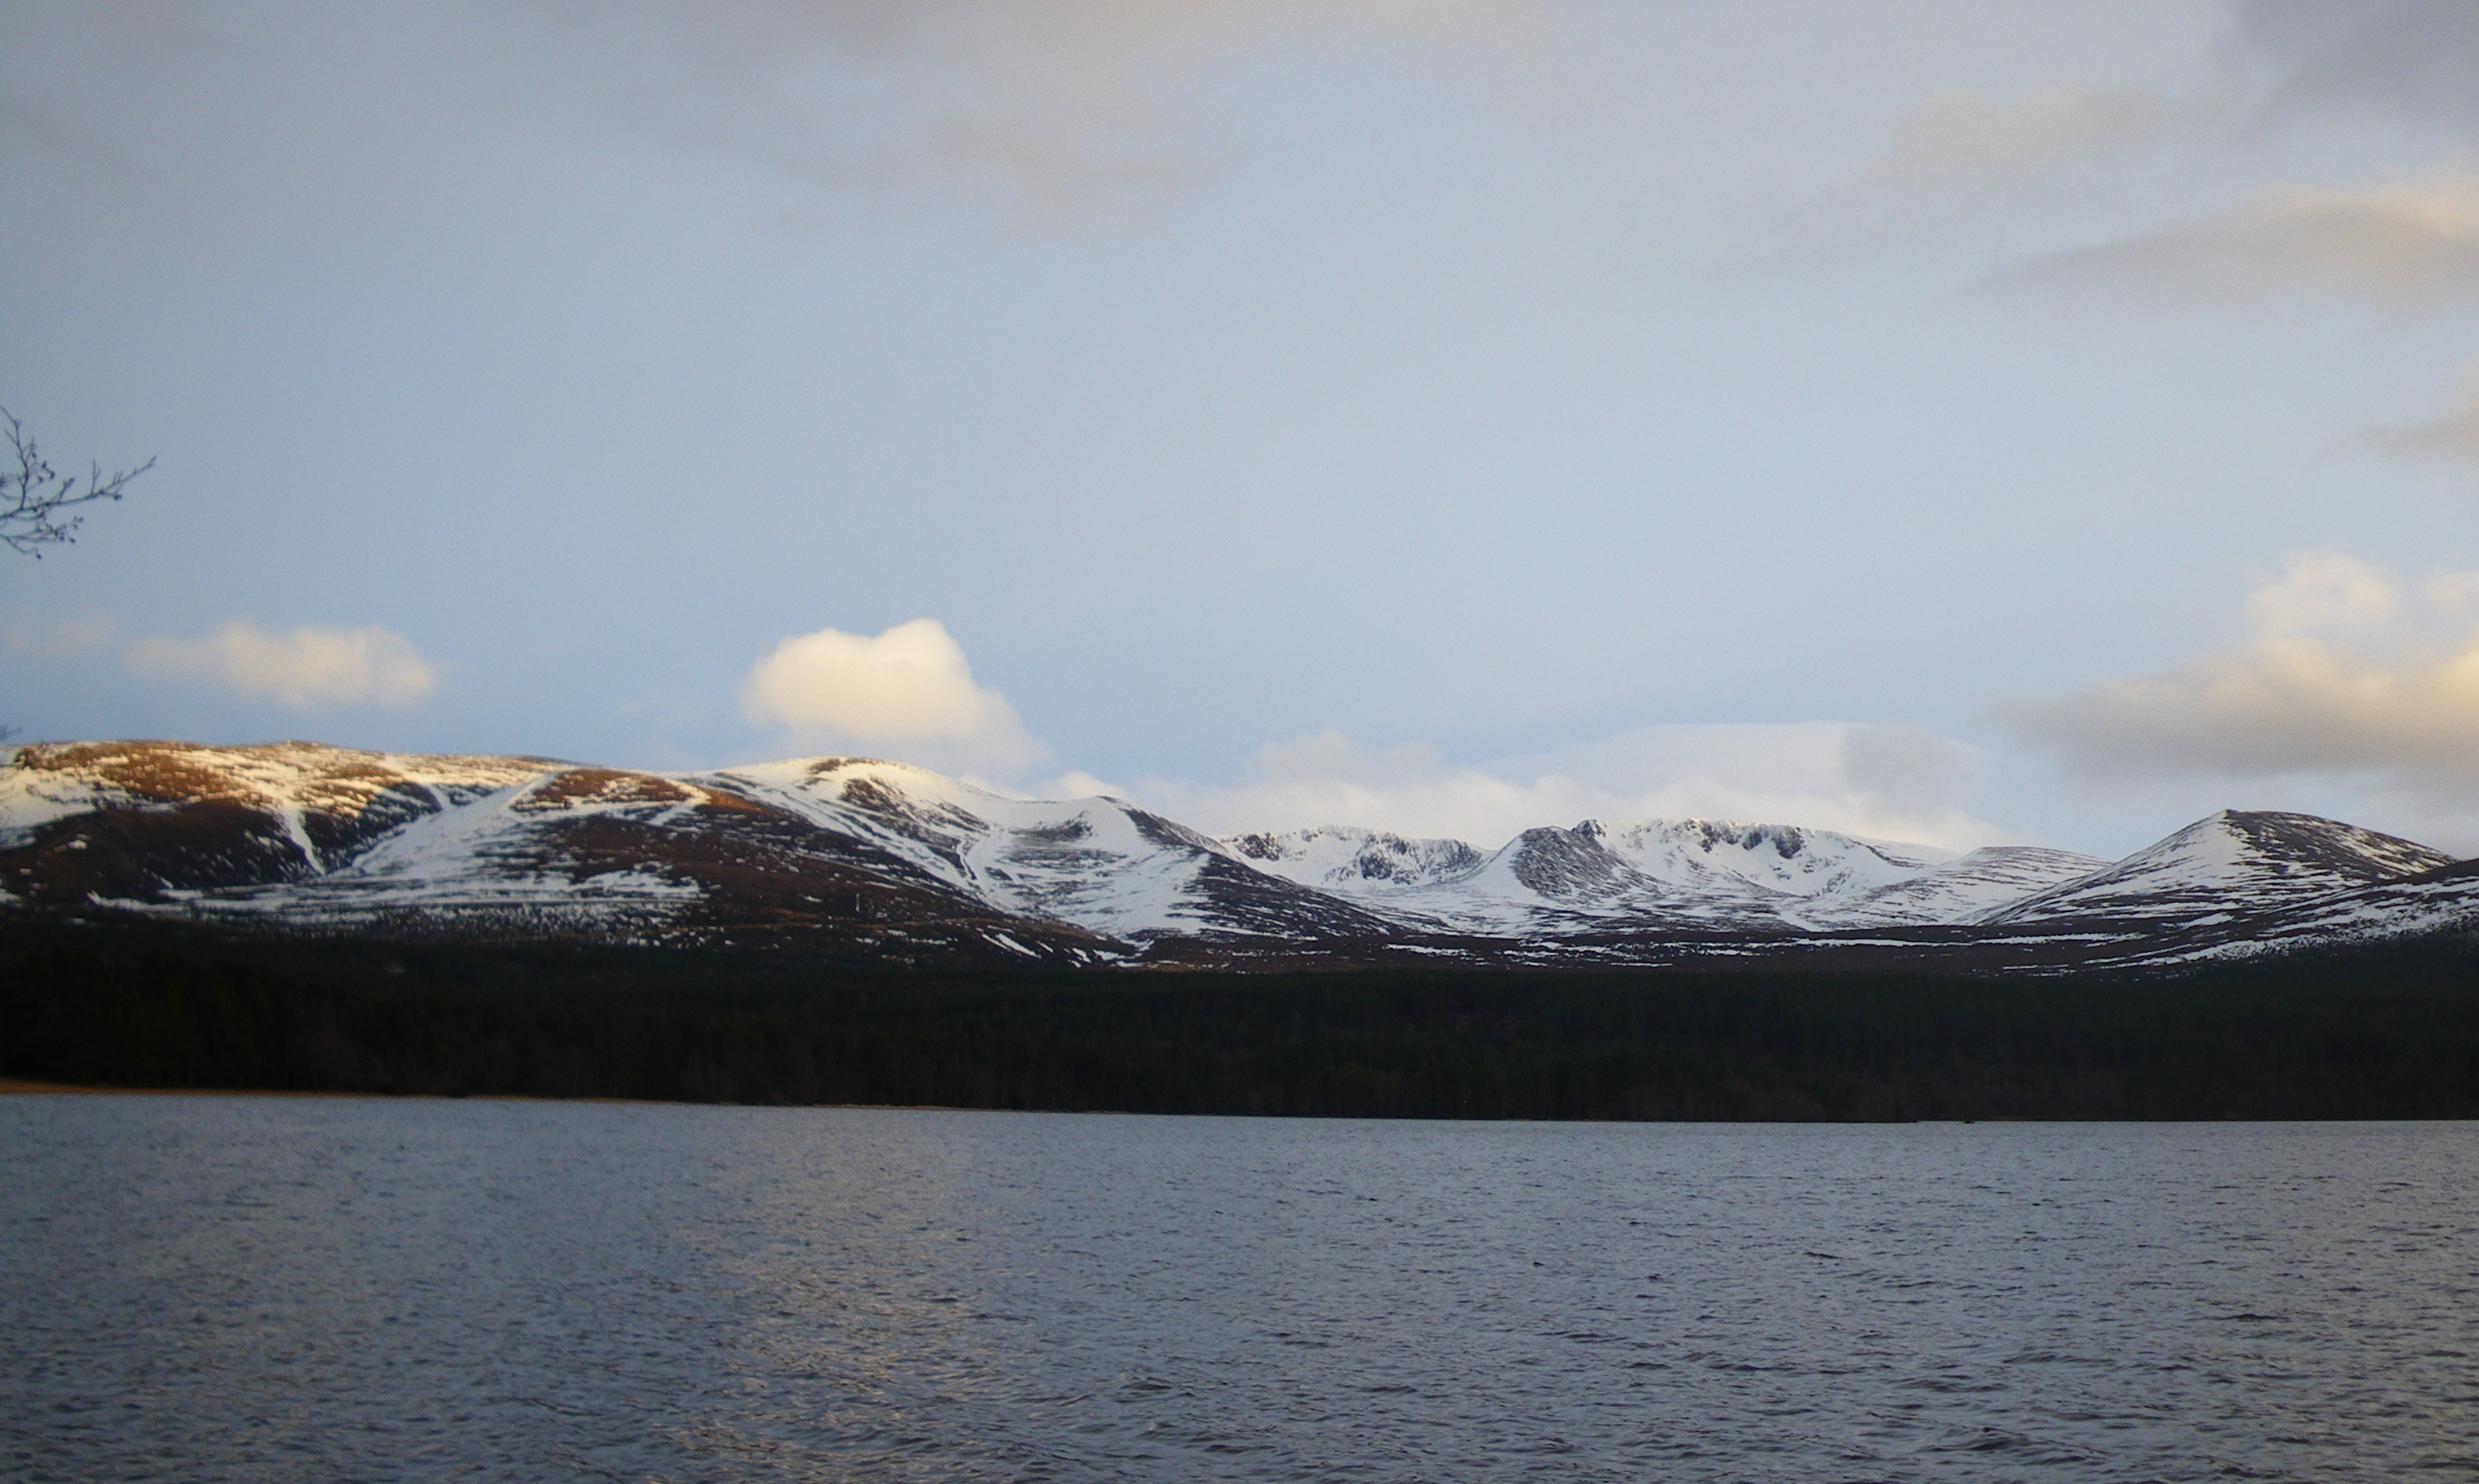 Evening light on the Northern Corries